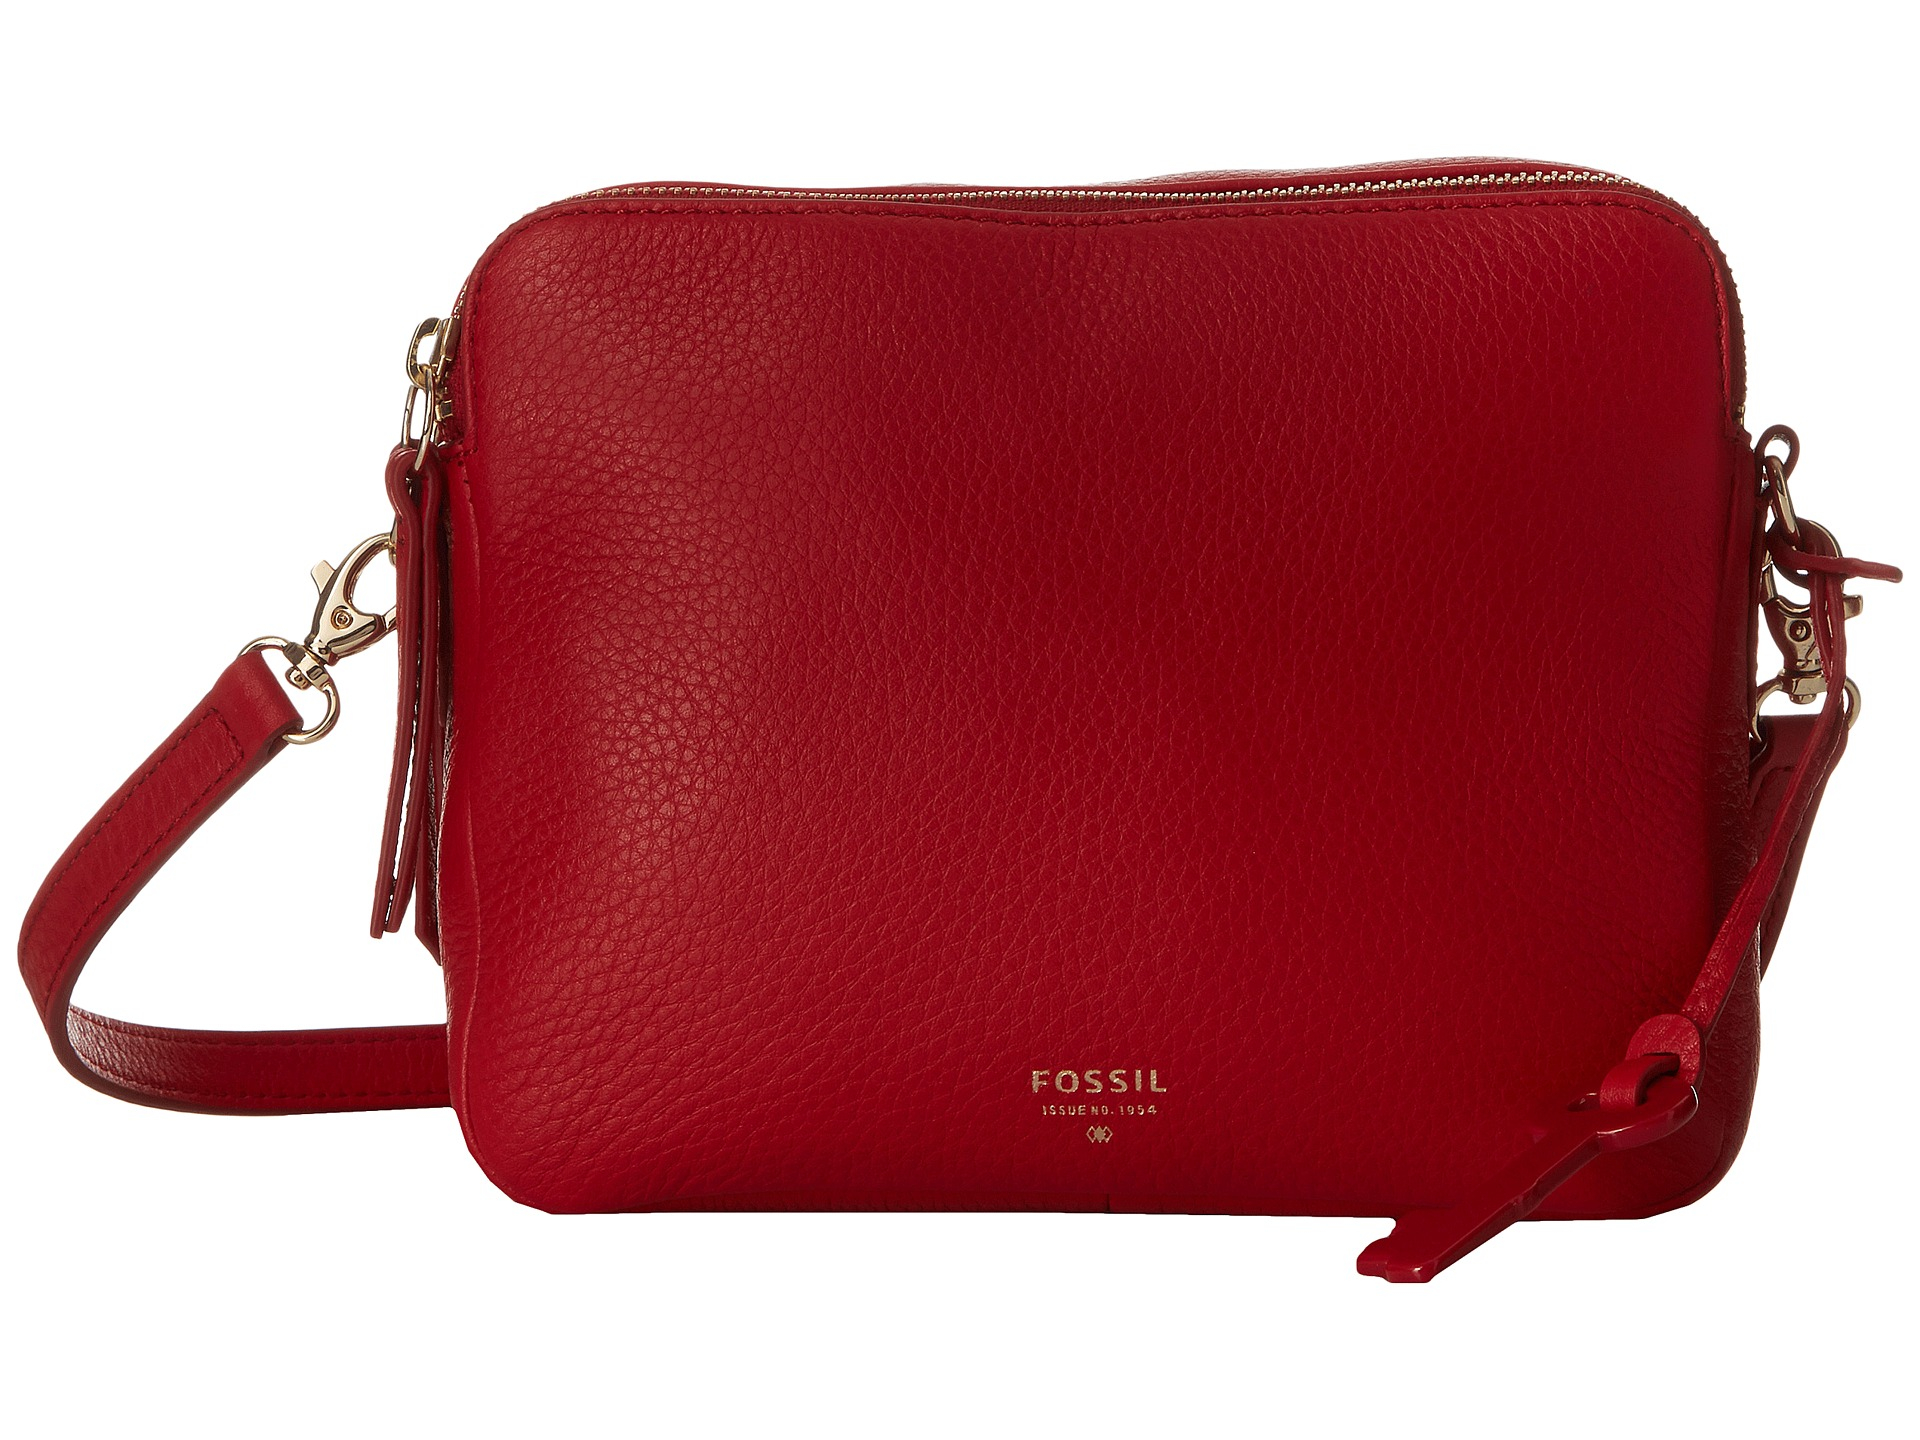 a2ab4ccd02f7d Lyst - Fossil Sydney Leather Crossbody Bag in Red